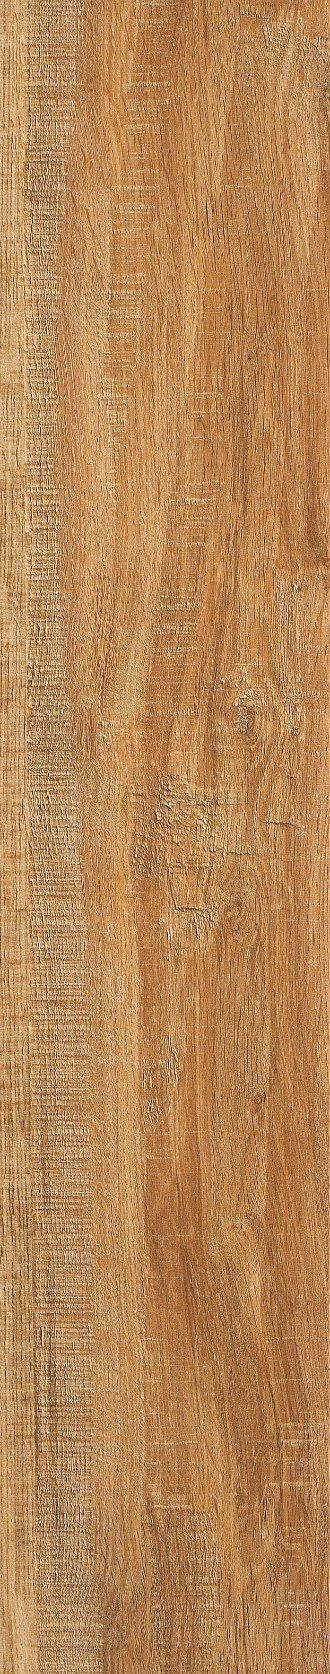 Wood Surface Glazed Porcelain Flooring Tile Ceramic Tiles Building Material